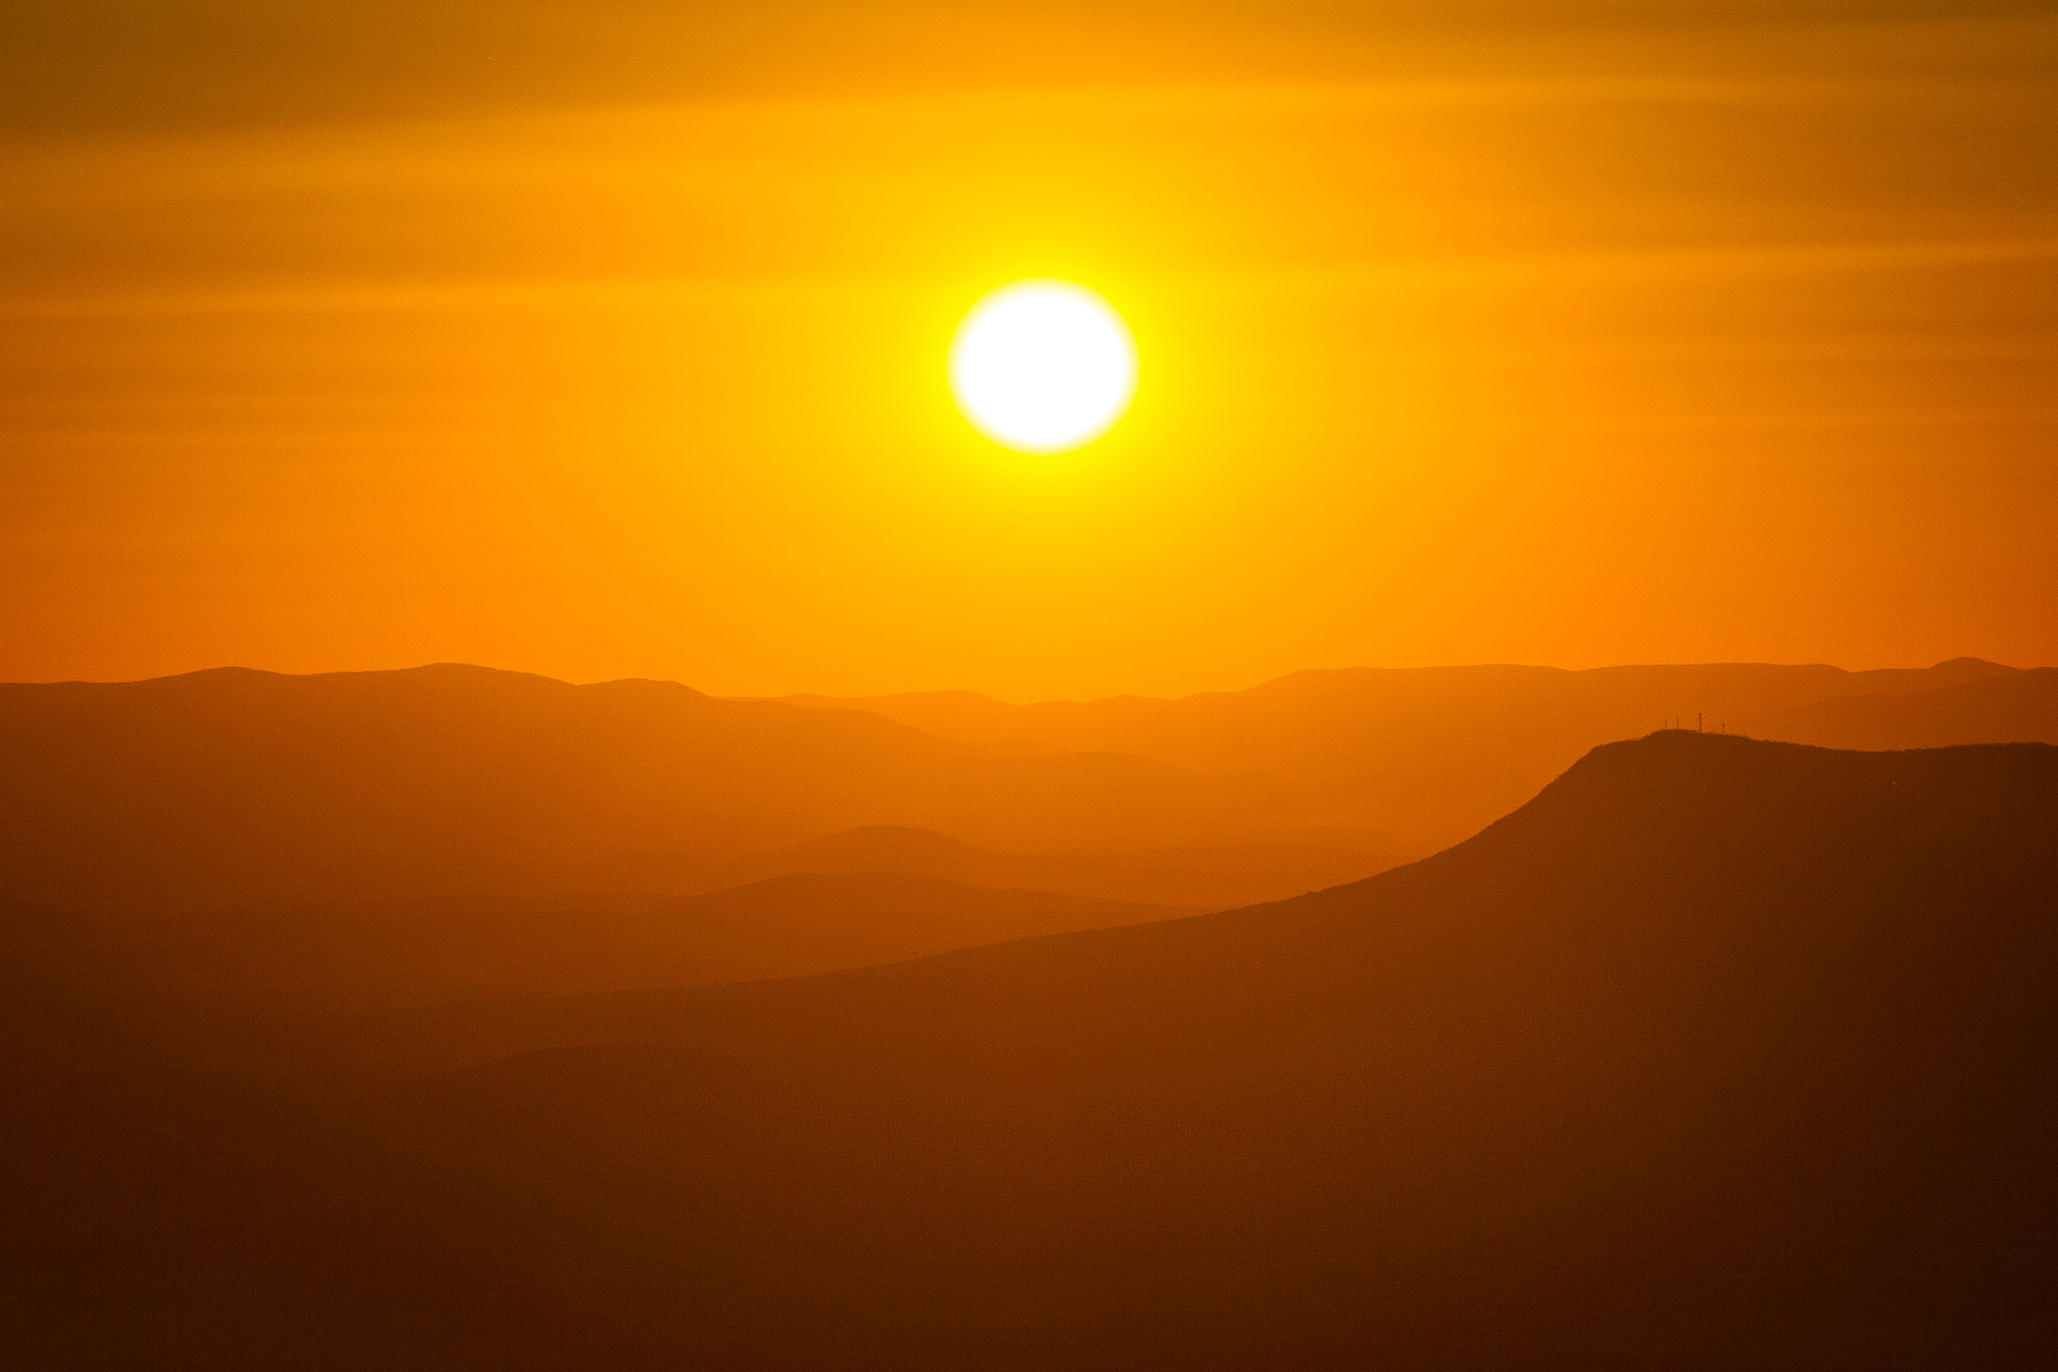 Sunset over the GWNF mountains from Bearfence Mountain, Shenandoah National Park